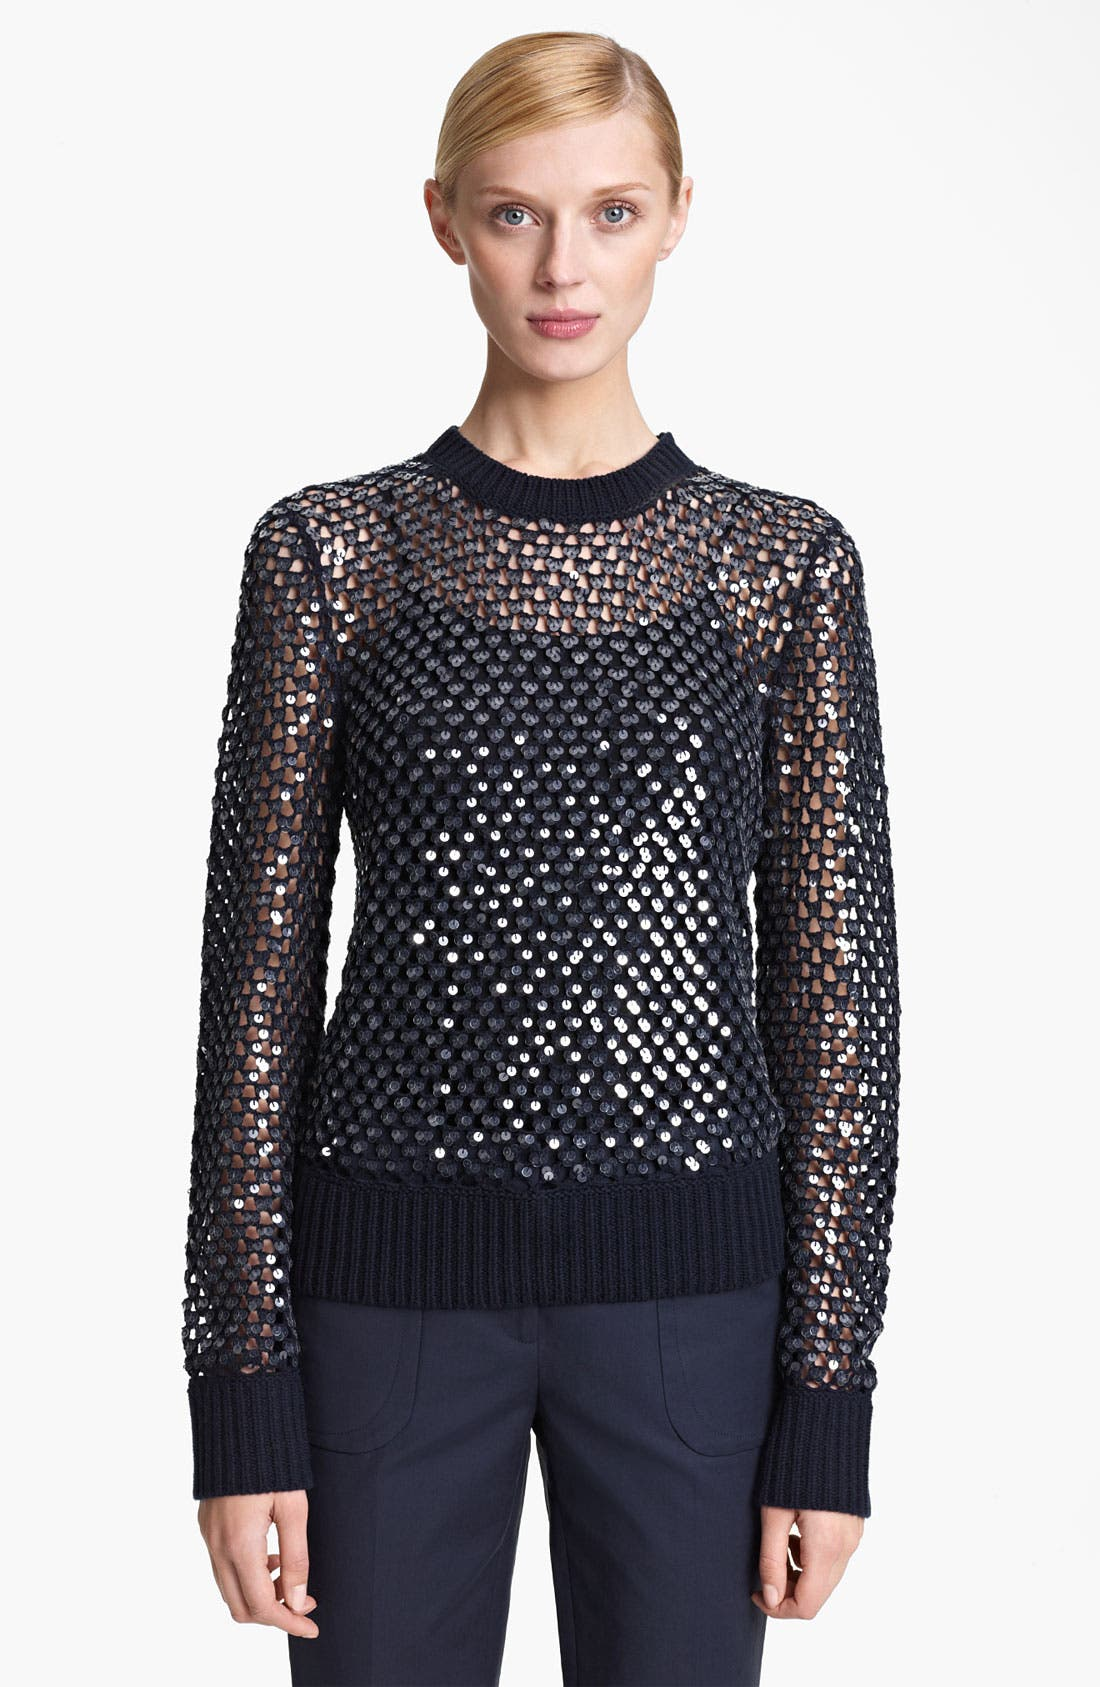 Alternate Image 1 Selected - Michael Kors Paillette Cashmere Sweater